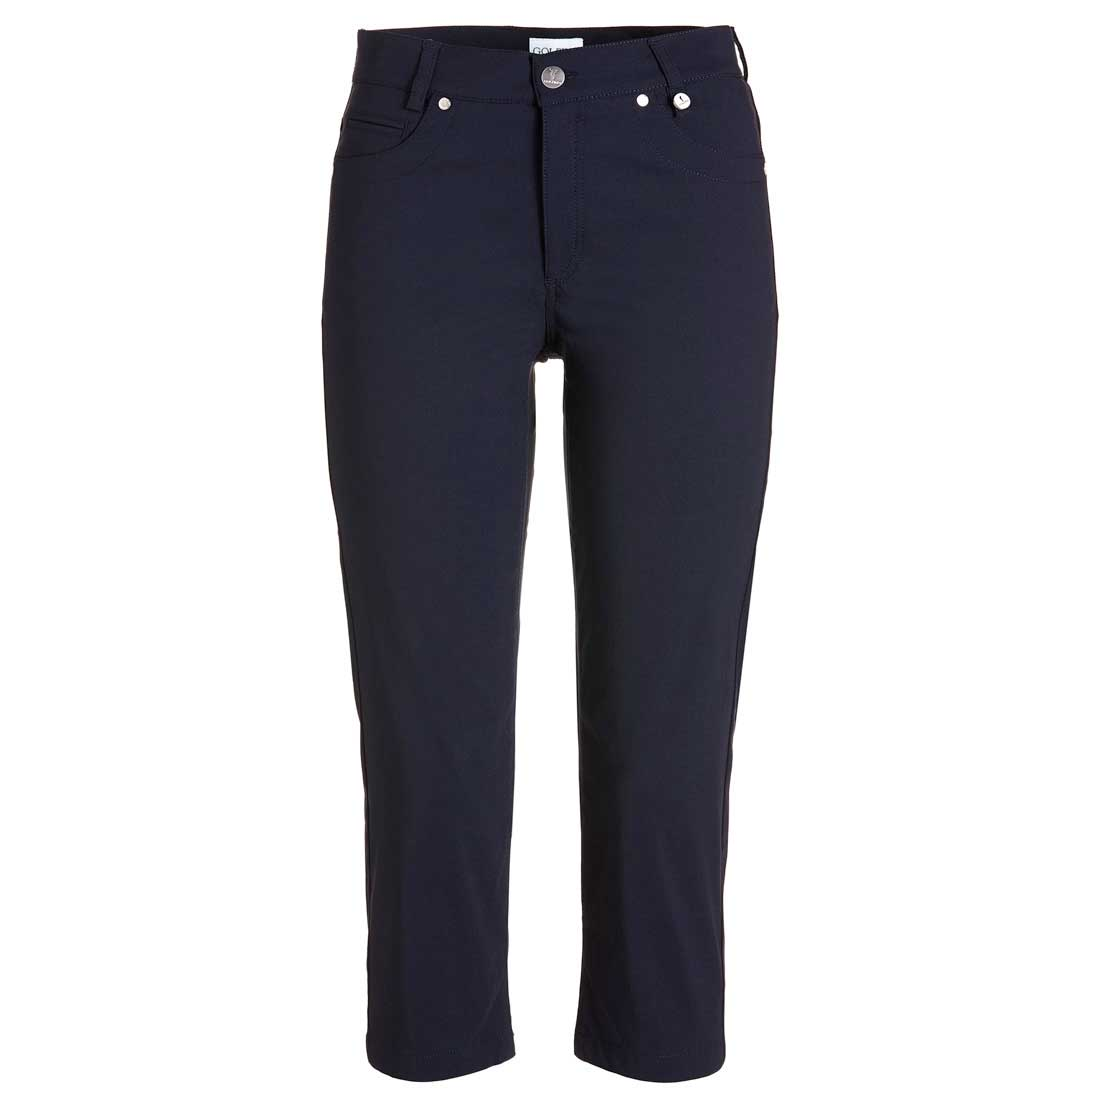 Ladies Techno Stretch Capri trousers with Moisture Management and Sun Protection function